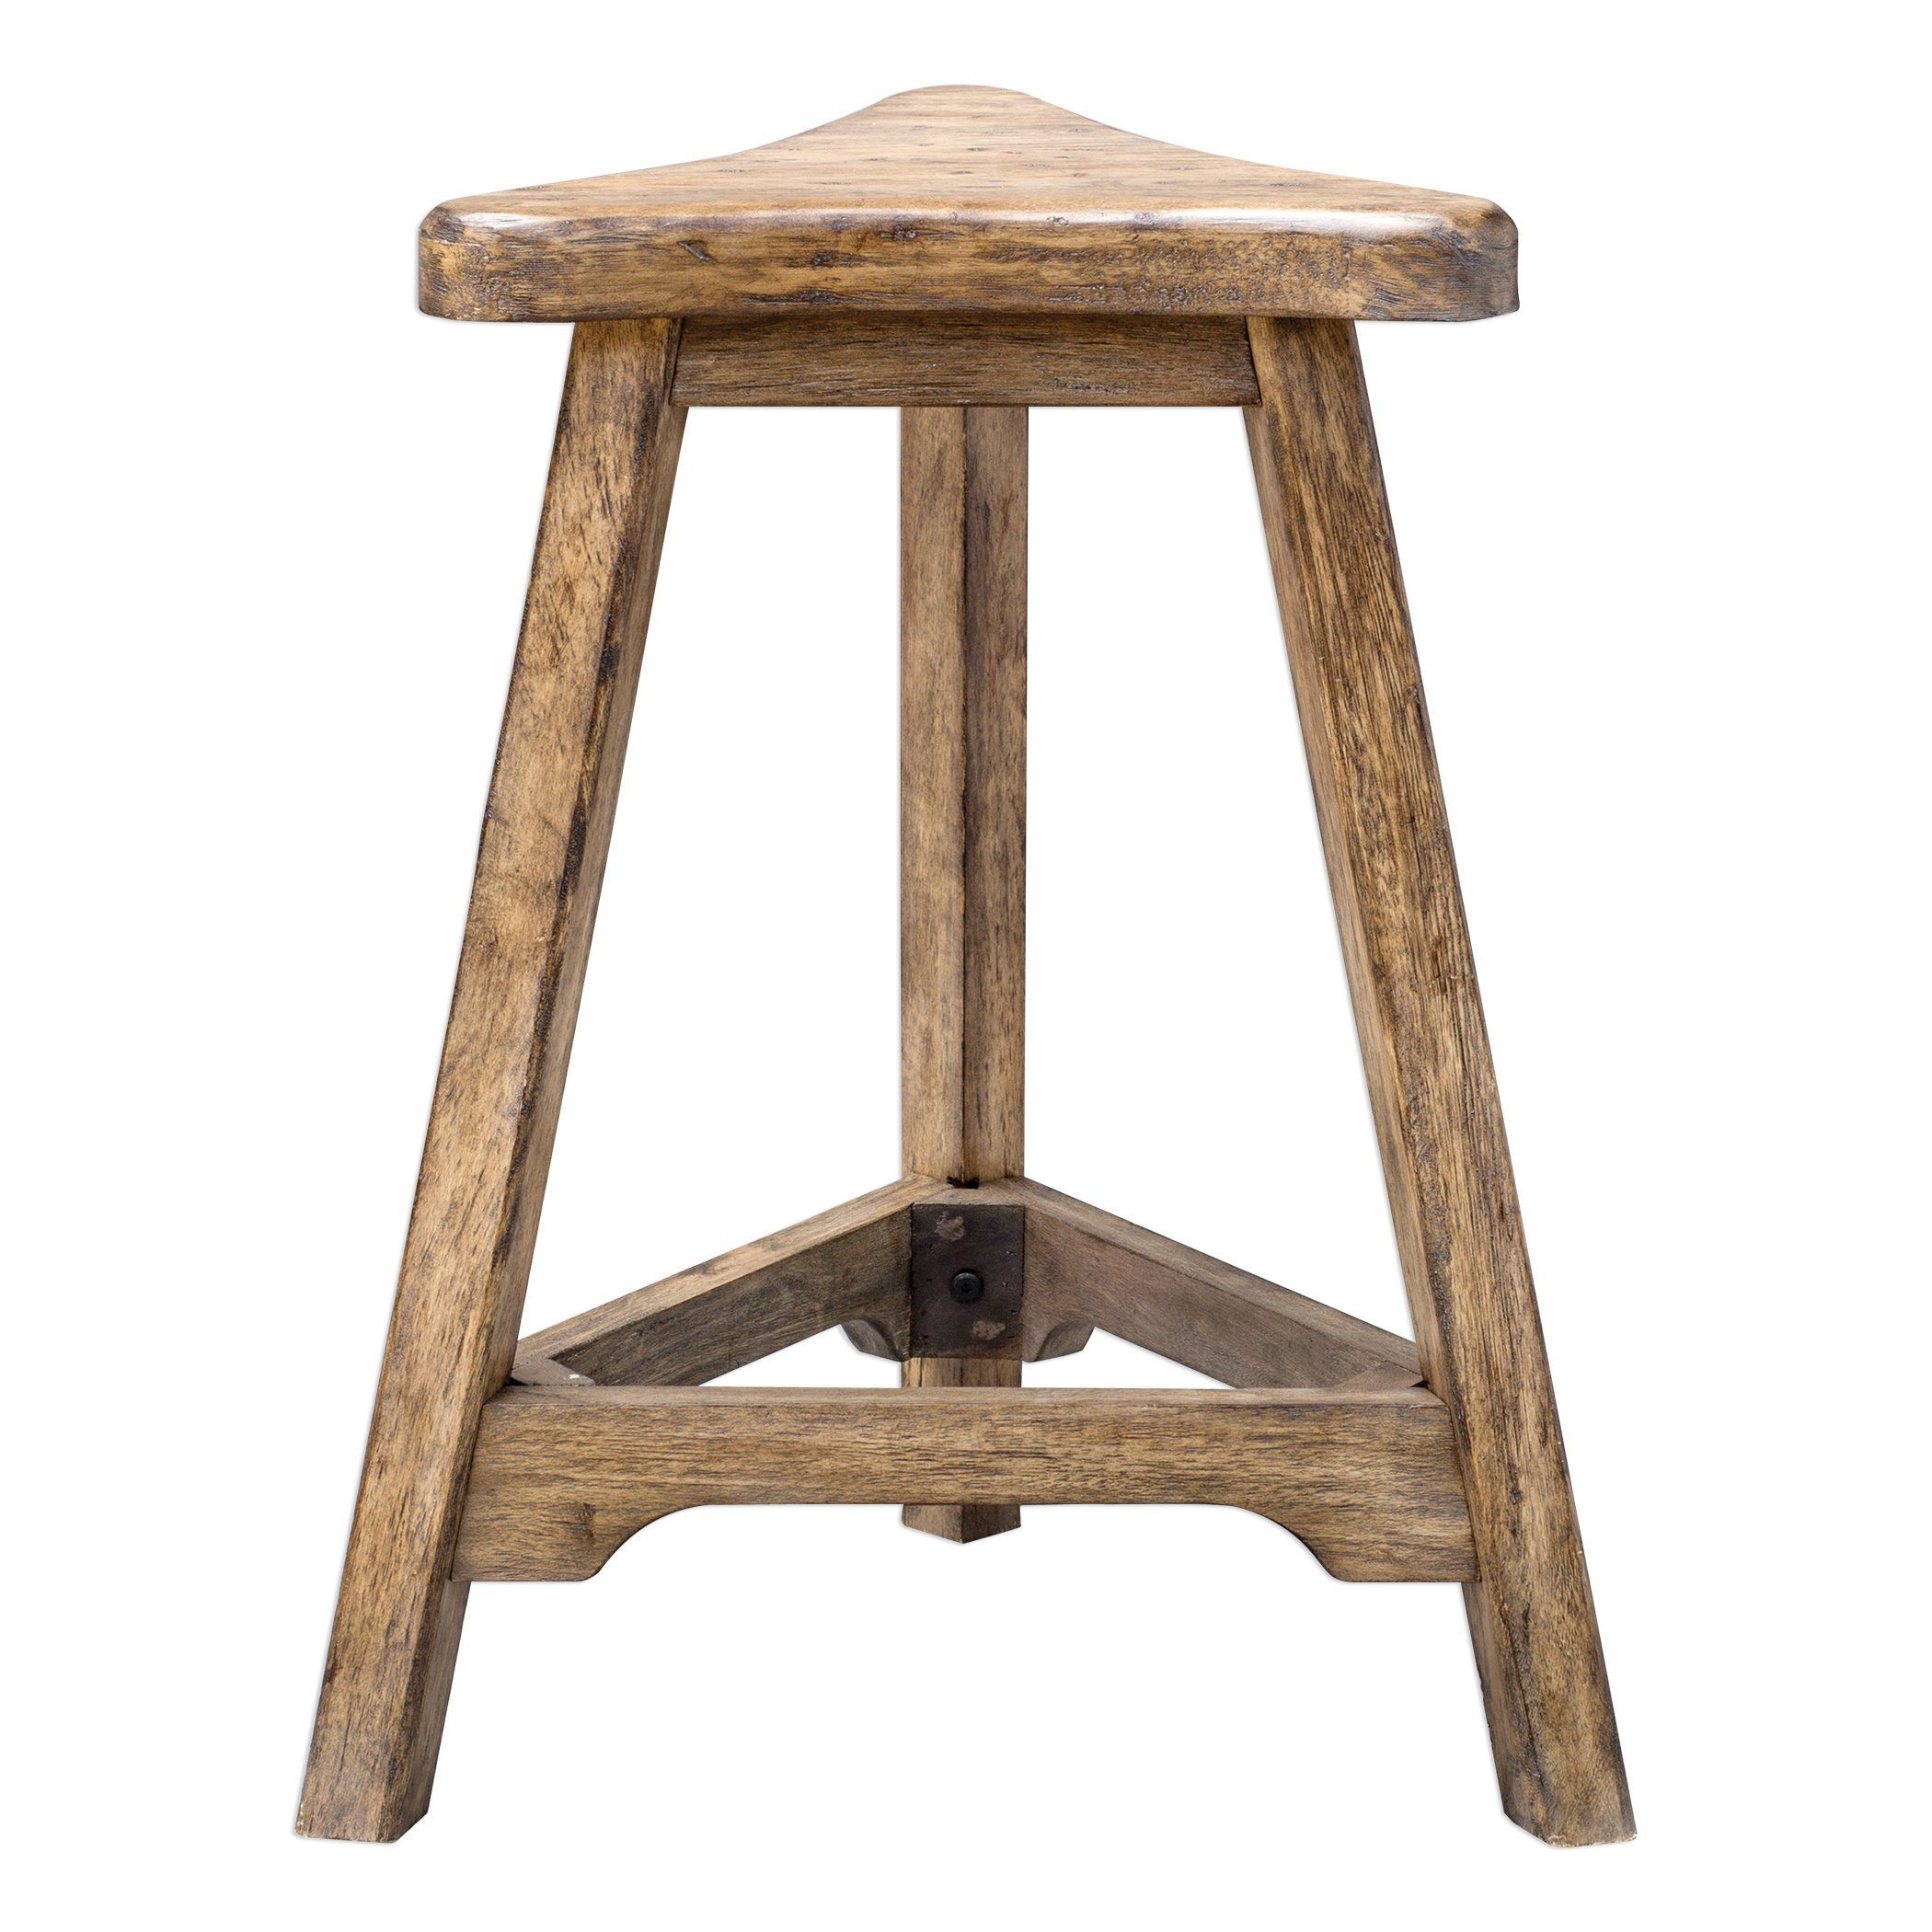 Distressed Weathered Oak Wood Triangle Counter Stool | Bar Minmalist Industrial